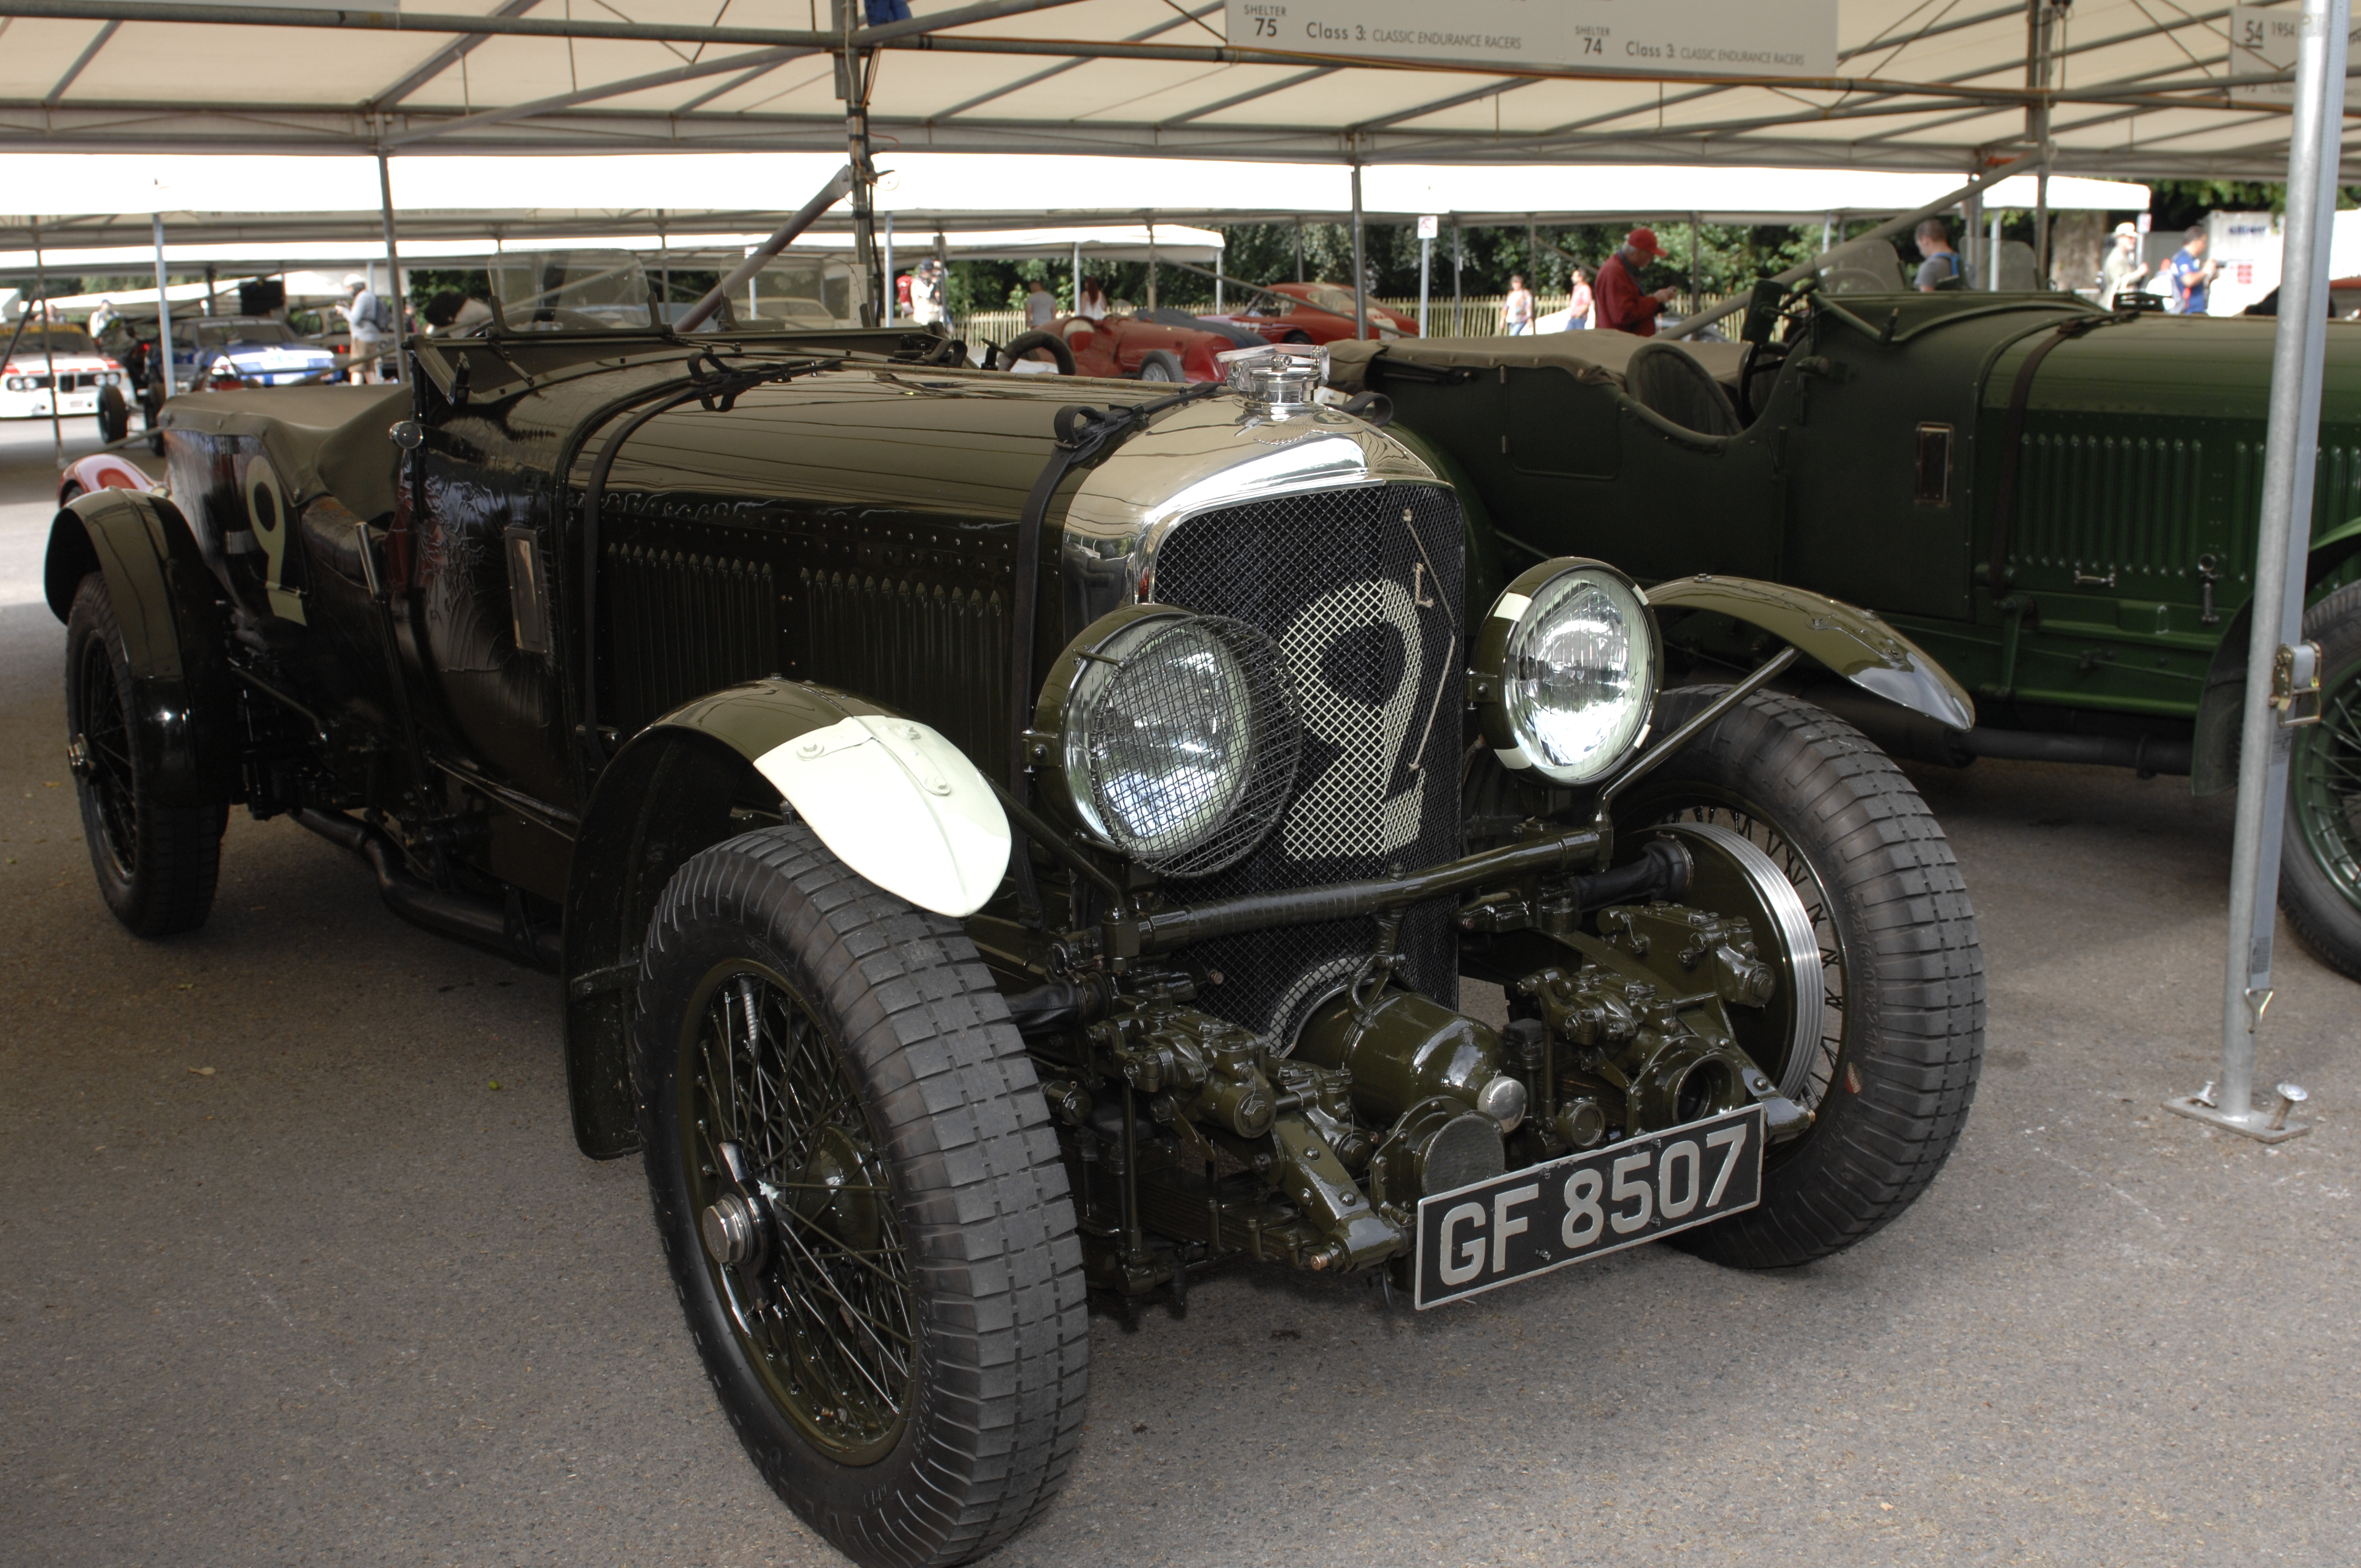 Chassis HM2868 is one of three works Bentley Speed Sixes. Built in 1930 on a 11-foot chassis, HM2868 won the 1930 Brooklands 24 hour race with Barnato and Clement driving. The same car was used at Le Mans and placed second.